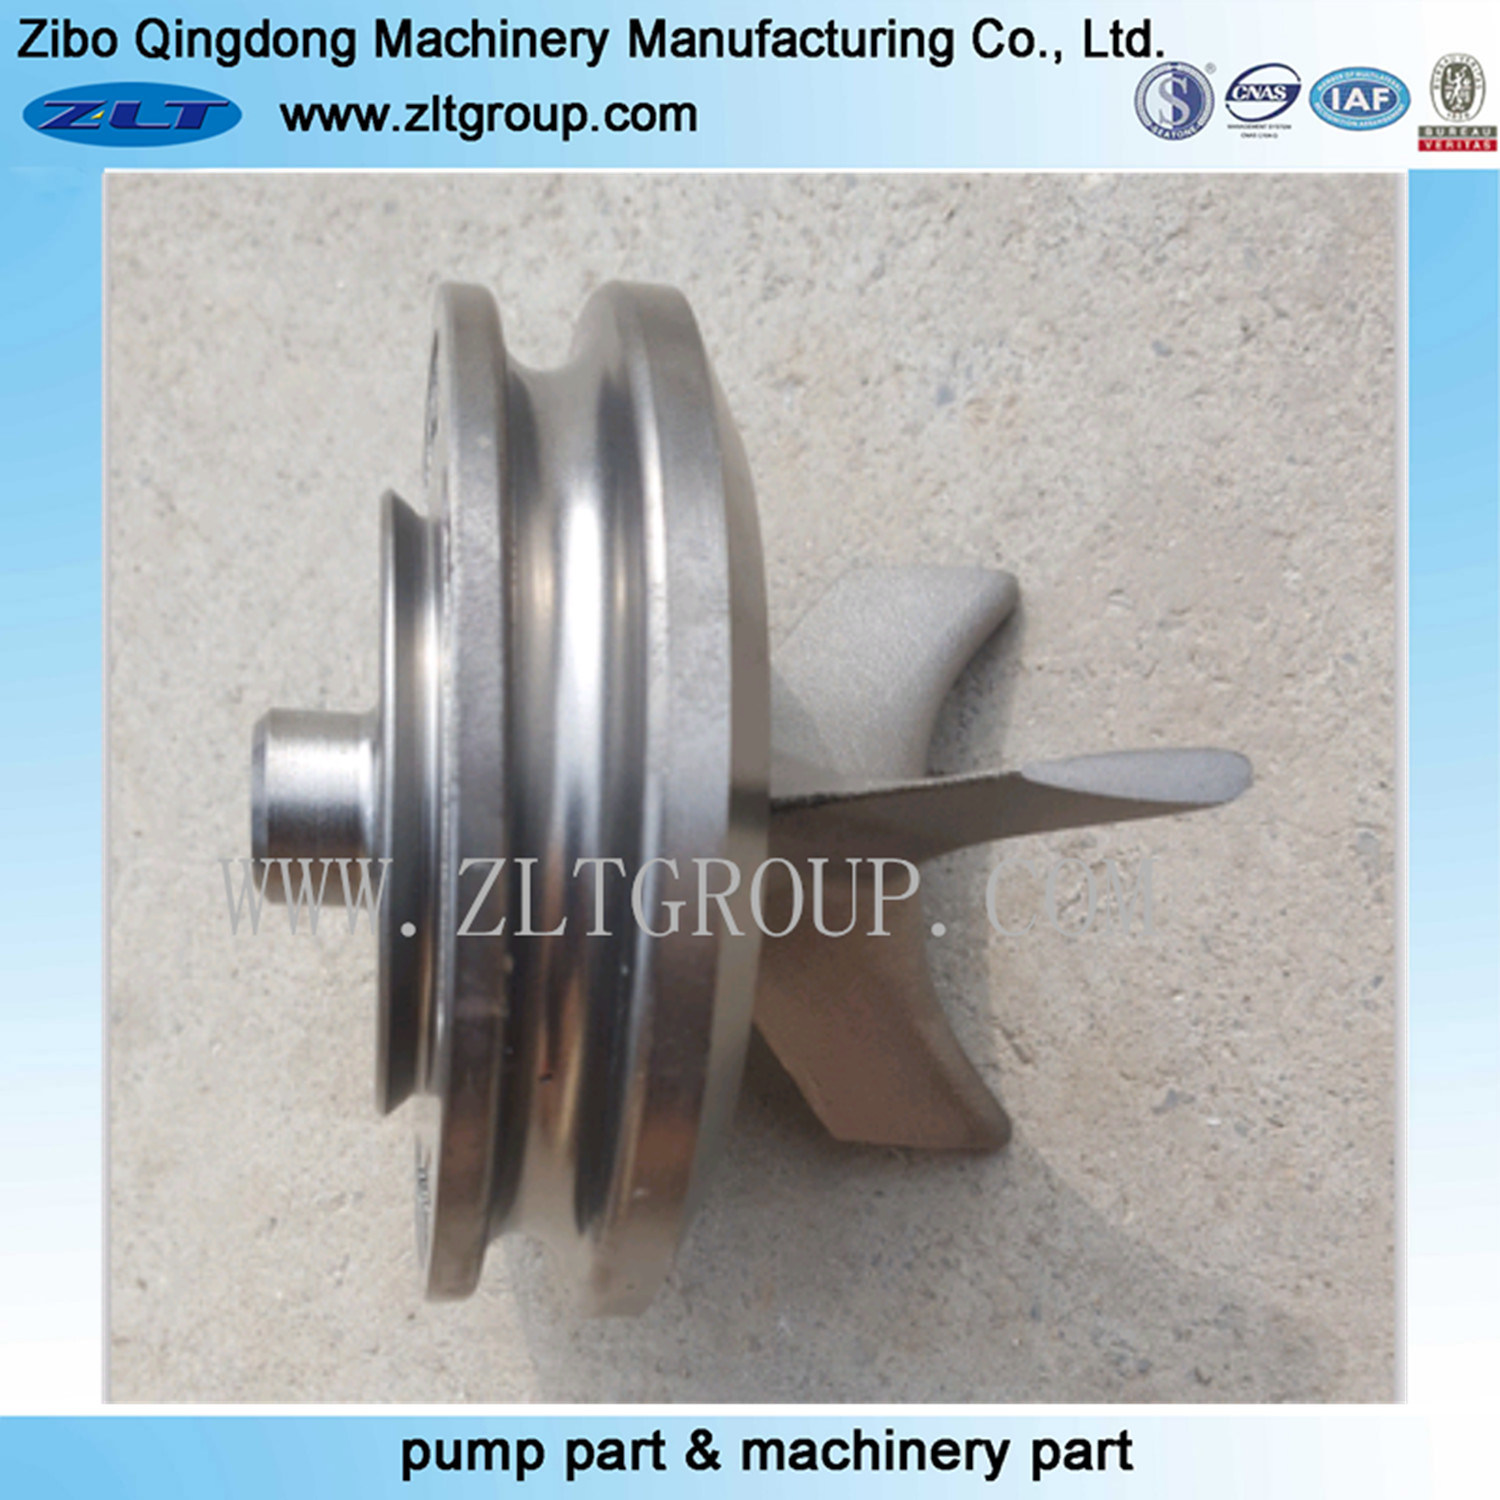 Stainless Steel/Carbon Steel Lost Wax Sand Castings